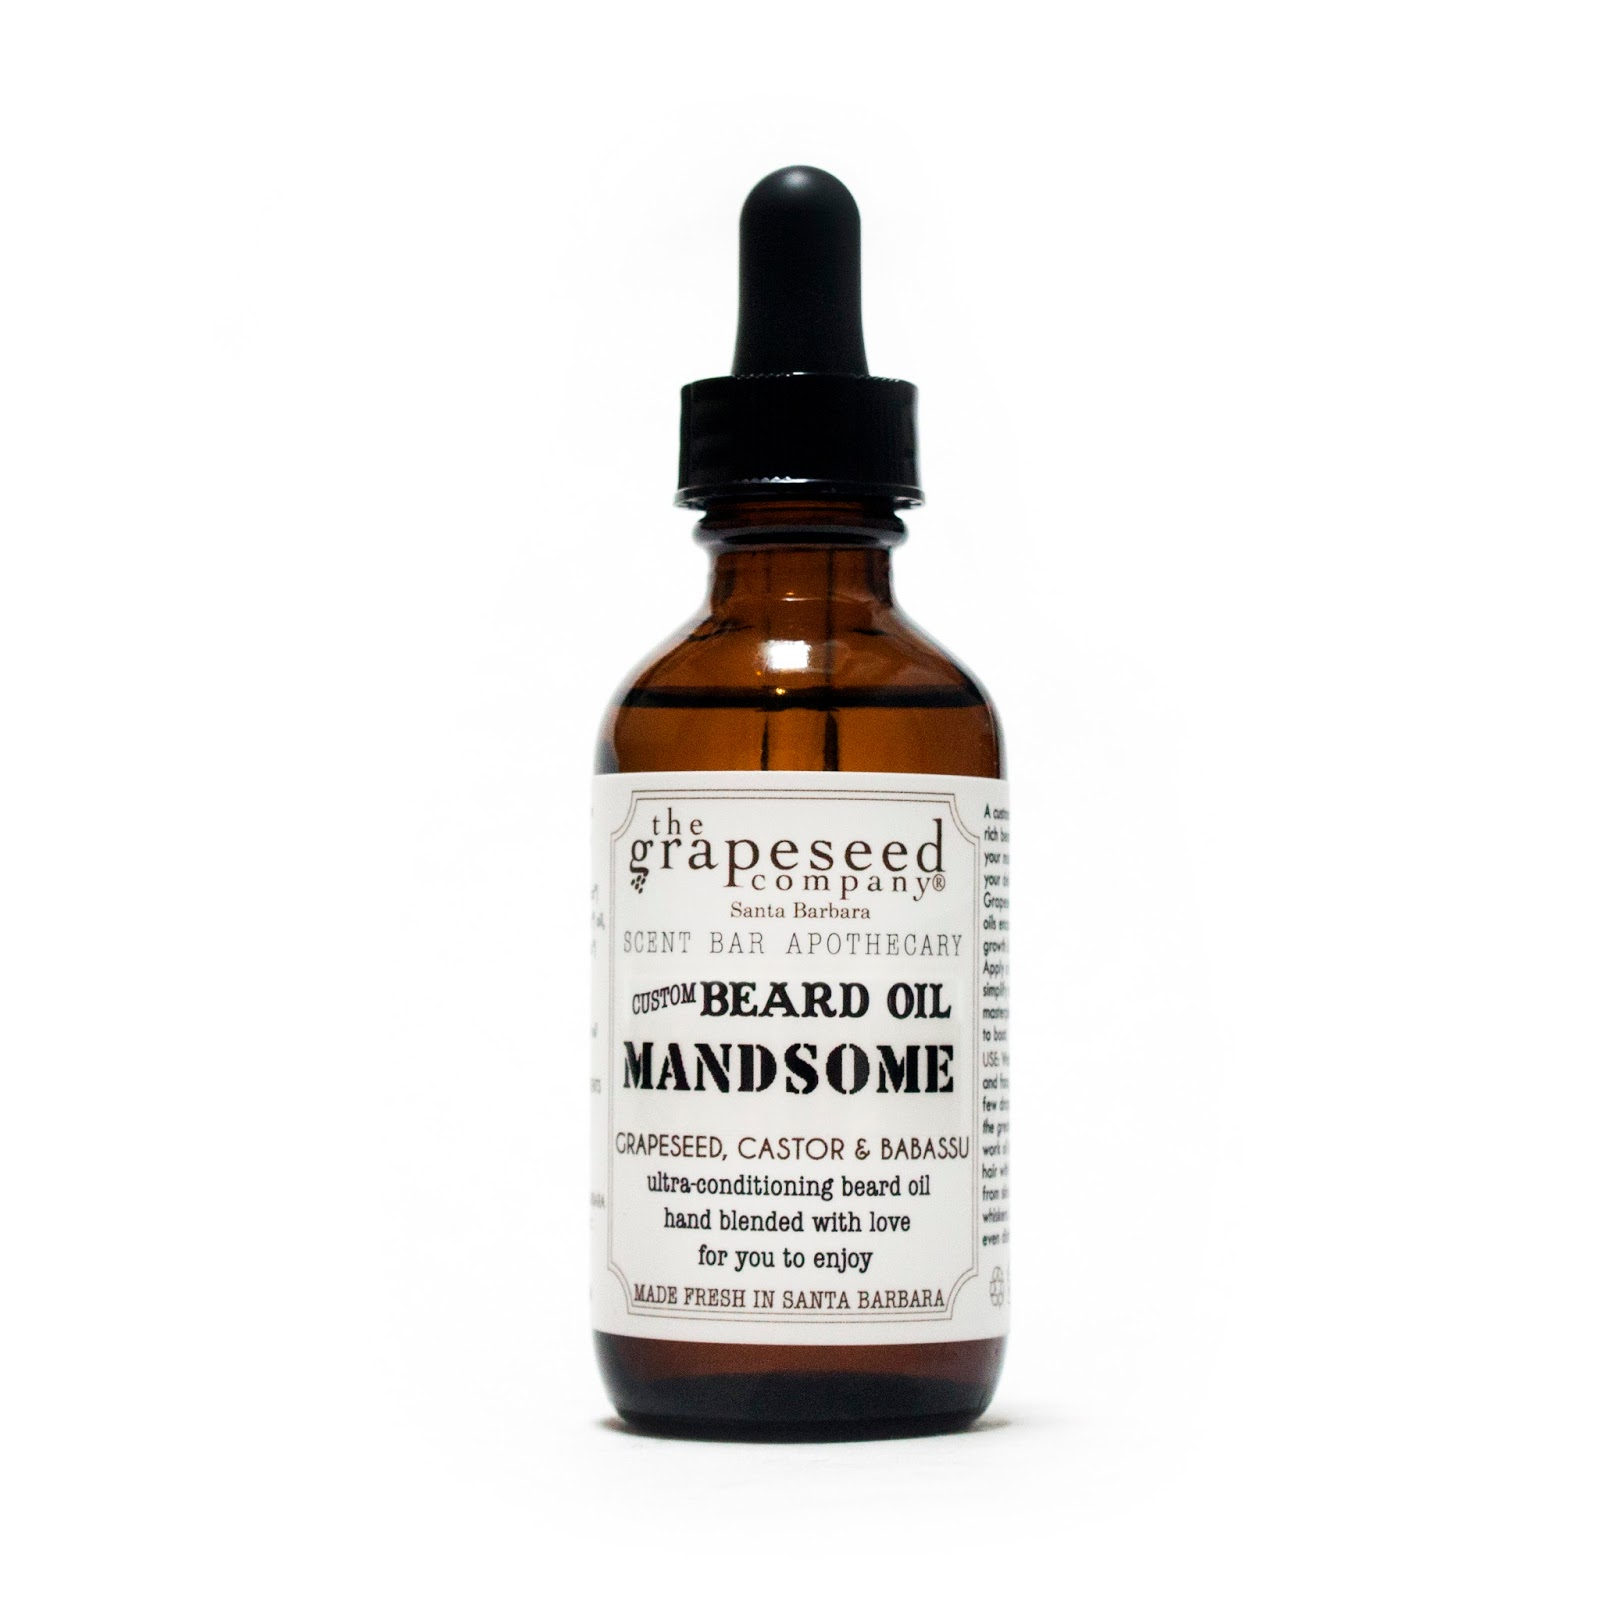 a70b8996bf6c Our new beard grooming oil with a custom scent blend and name or your  choice in 2.3oz amber glass bottle. Perfect for those dad s with mustaches  or mandible ...